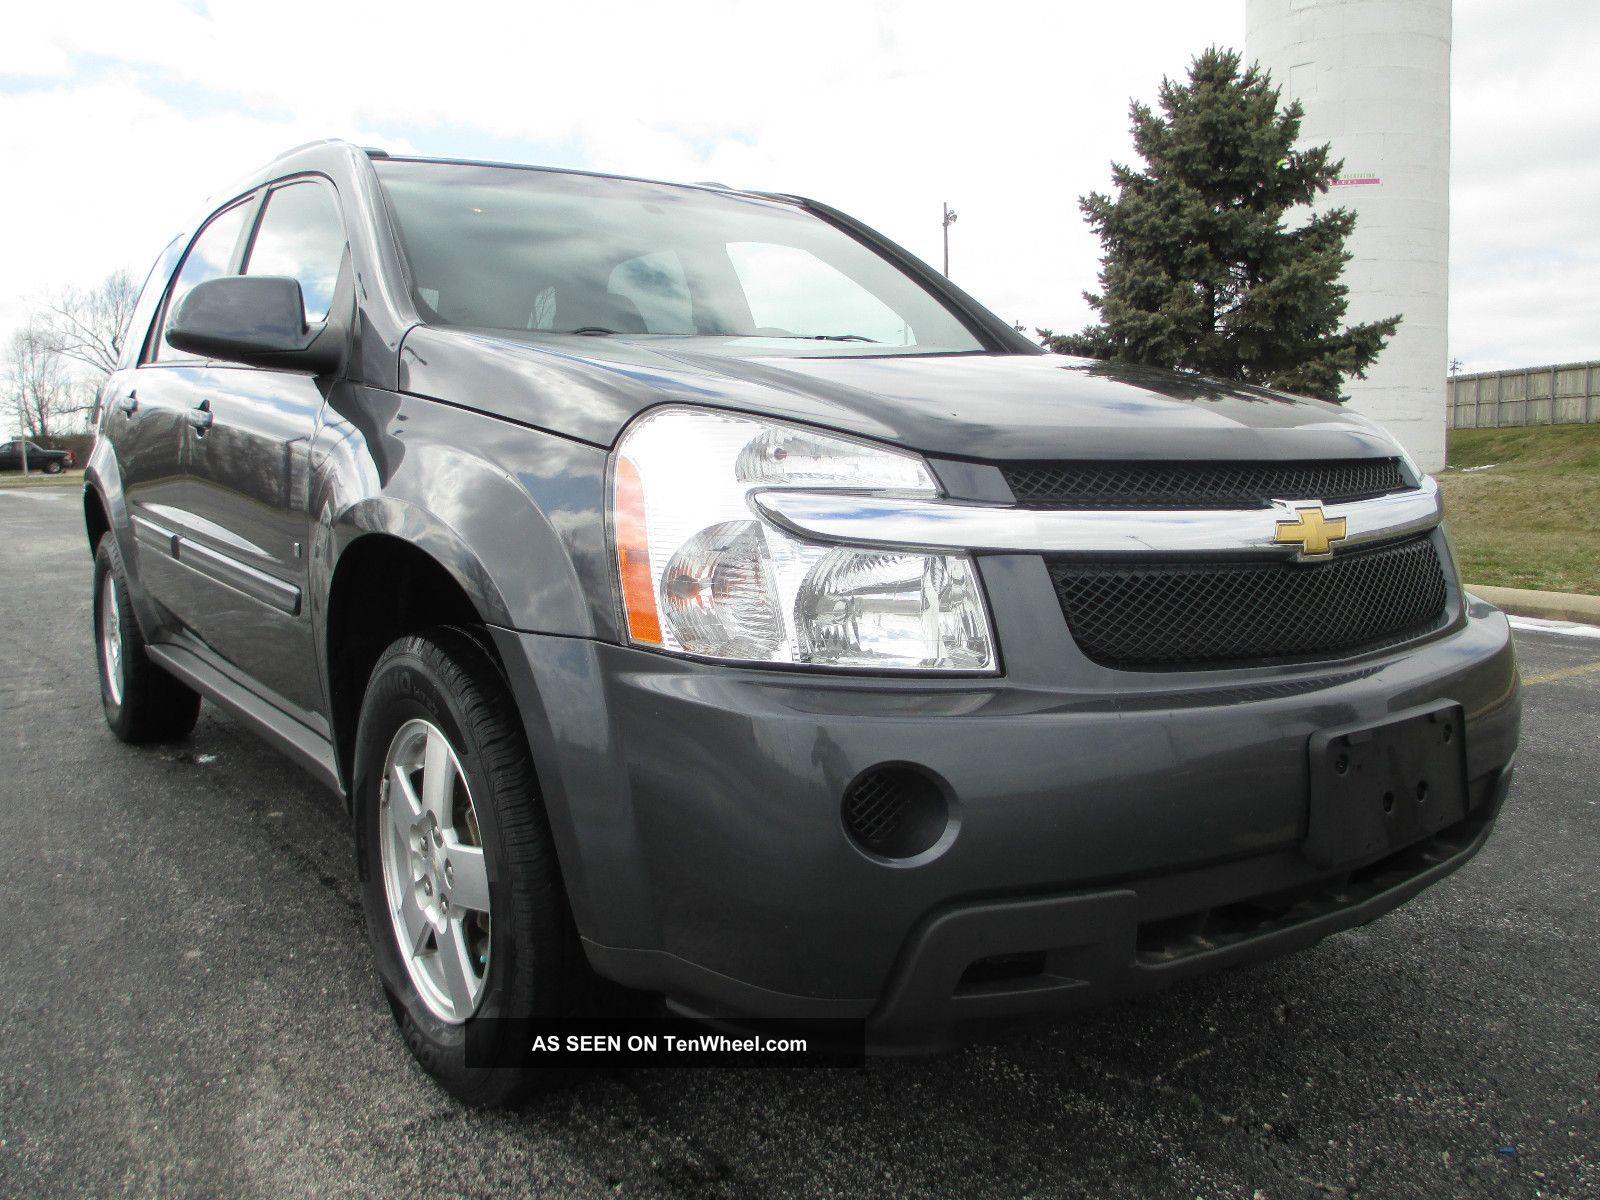 2009 Chevrolet Equinox Lt Sport Utility 4 Door 3 4l All